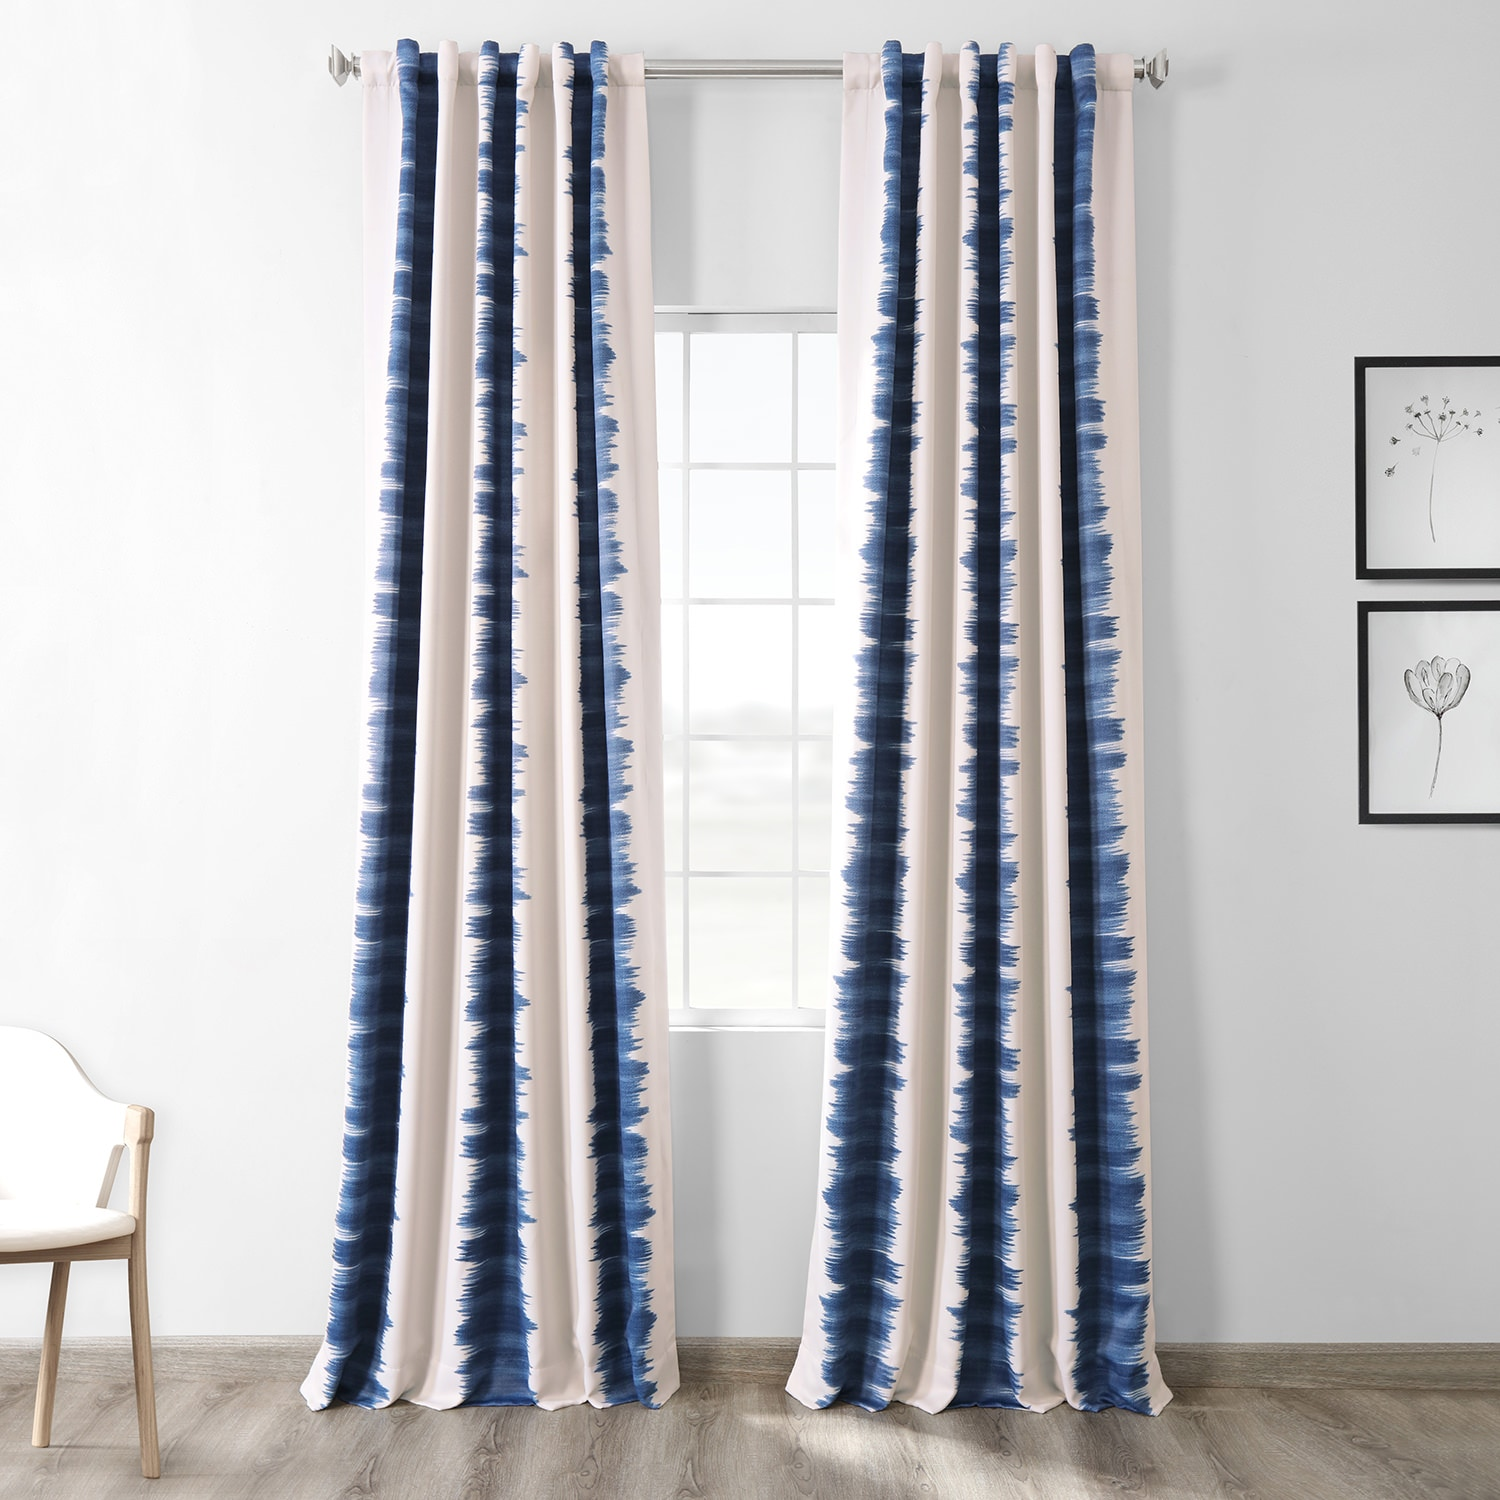 Curtains For A Blue Room Flambe Blue Room Darkening Curtain